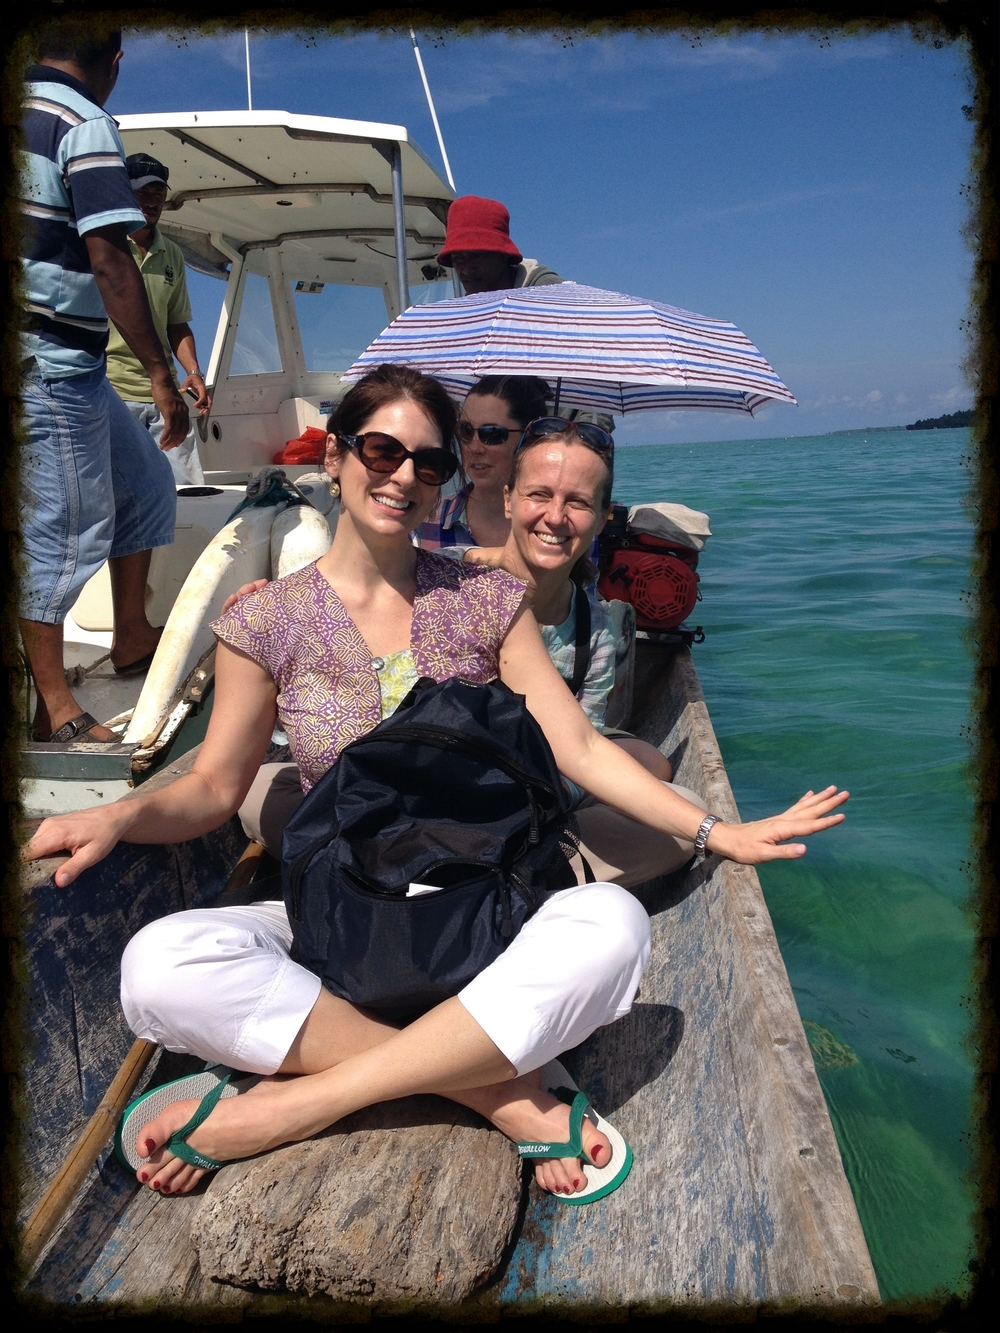 Rebekah and NGO workers board a dugout canoe in the farthest Indonesian archipelago to plant mangroves and restore ecology.